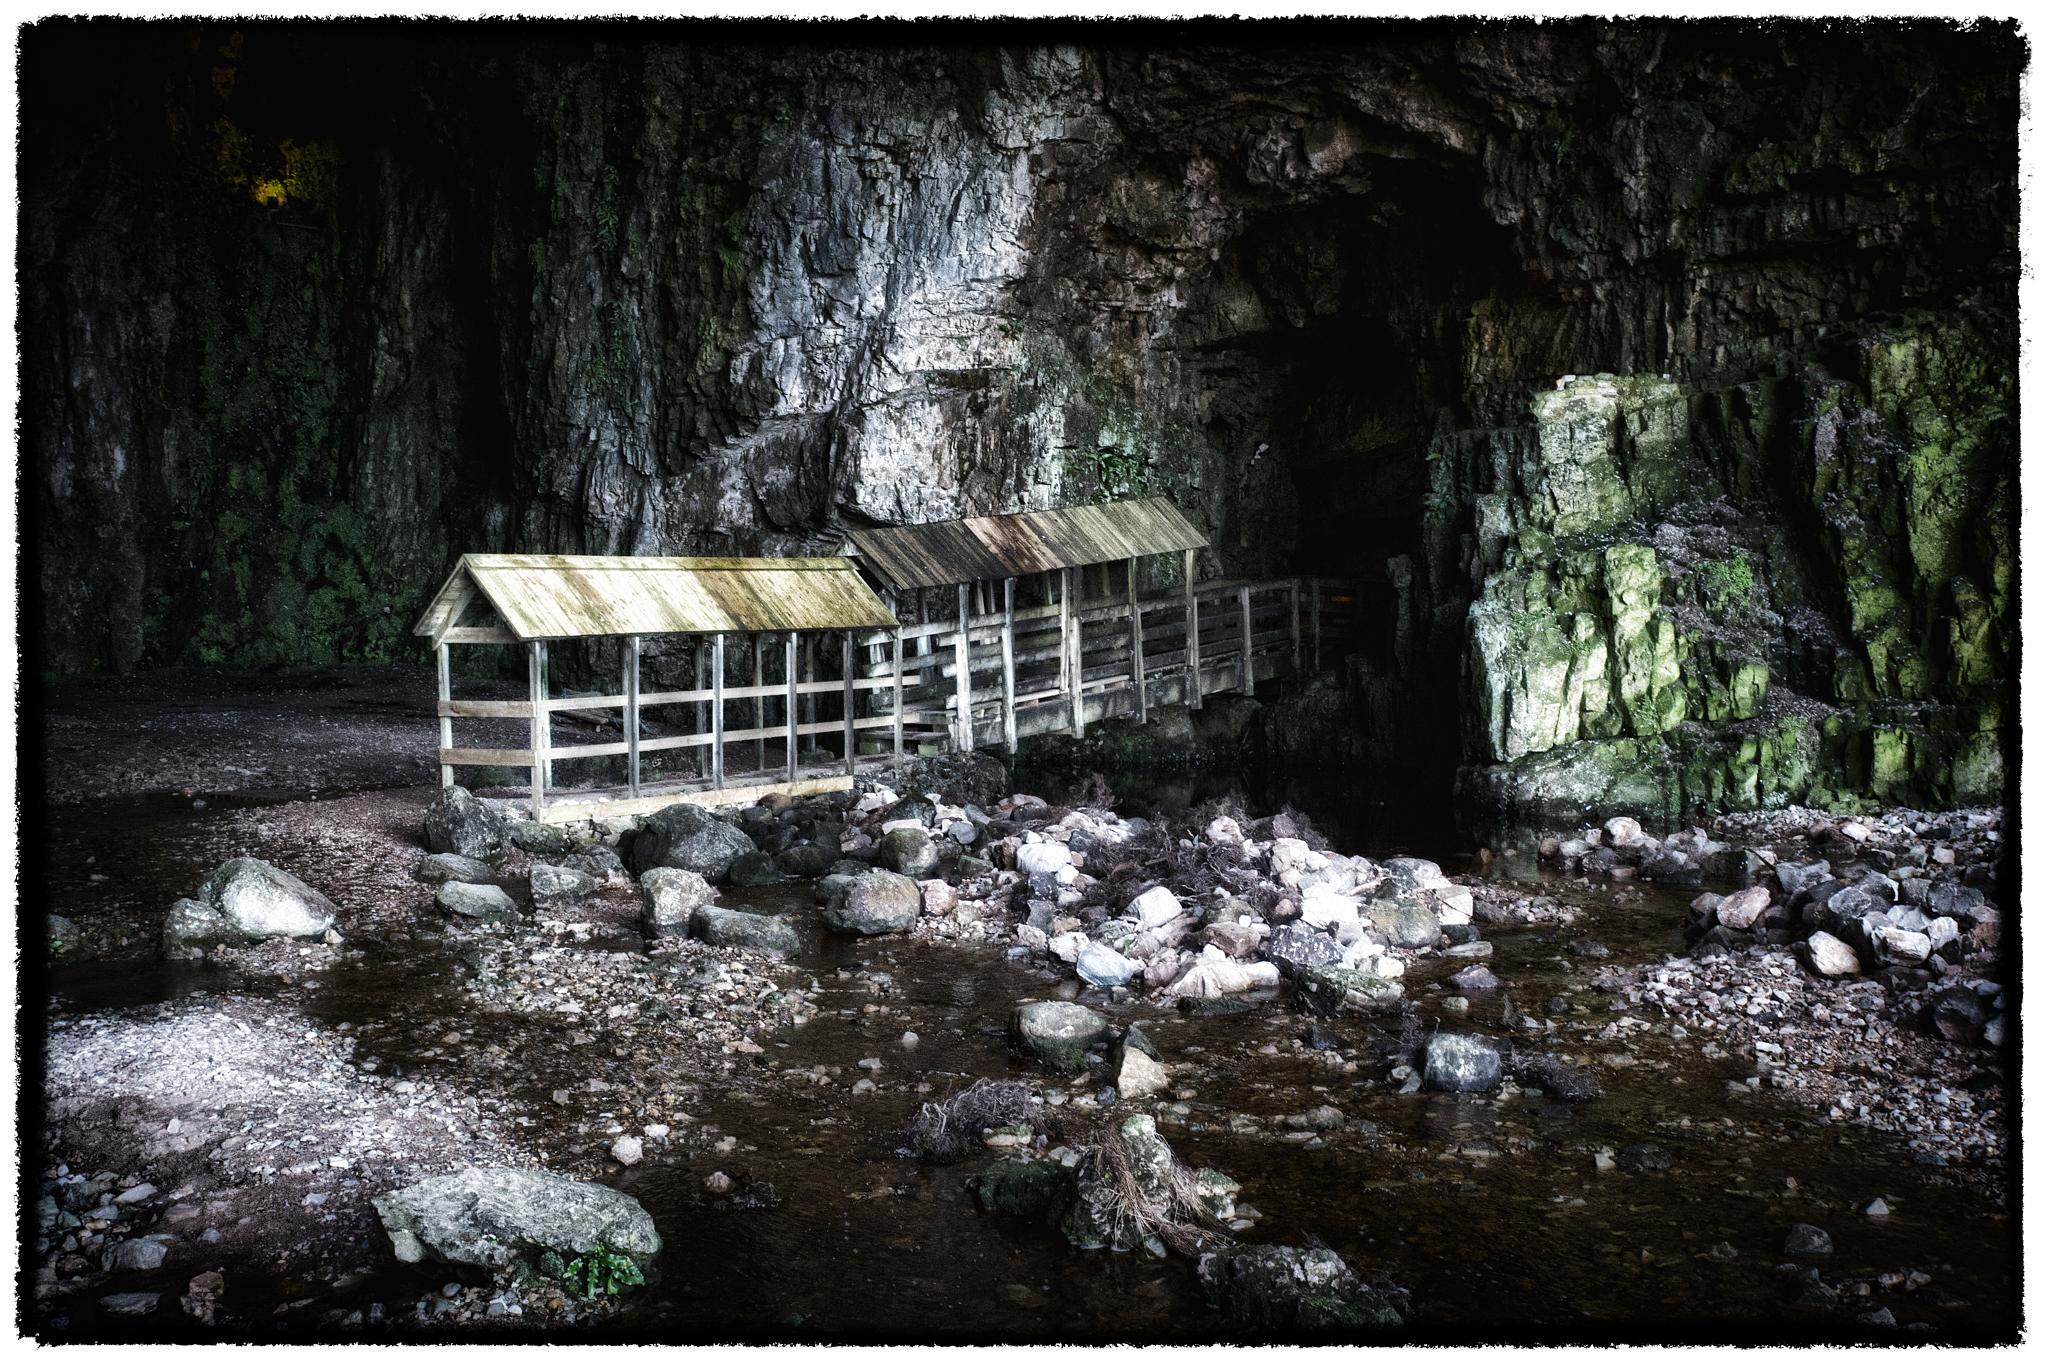 Entrance to Smoo Cave by isegarth